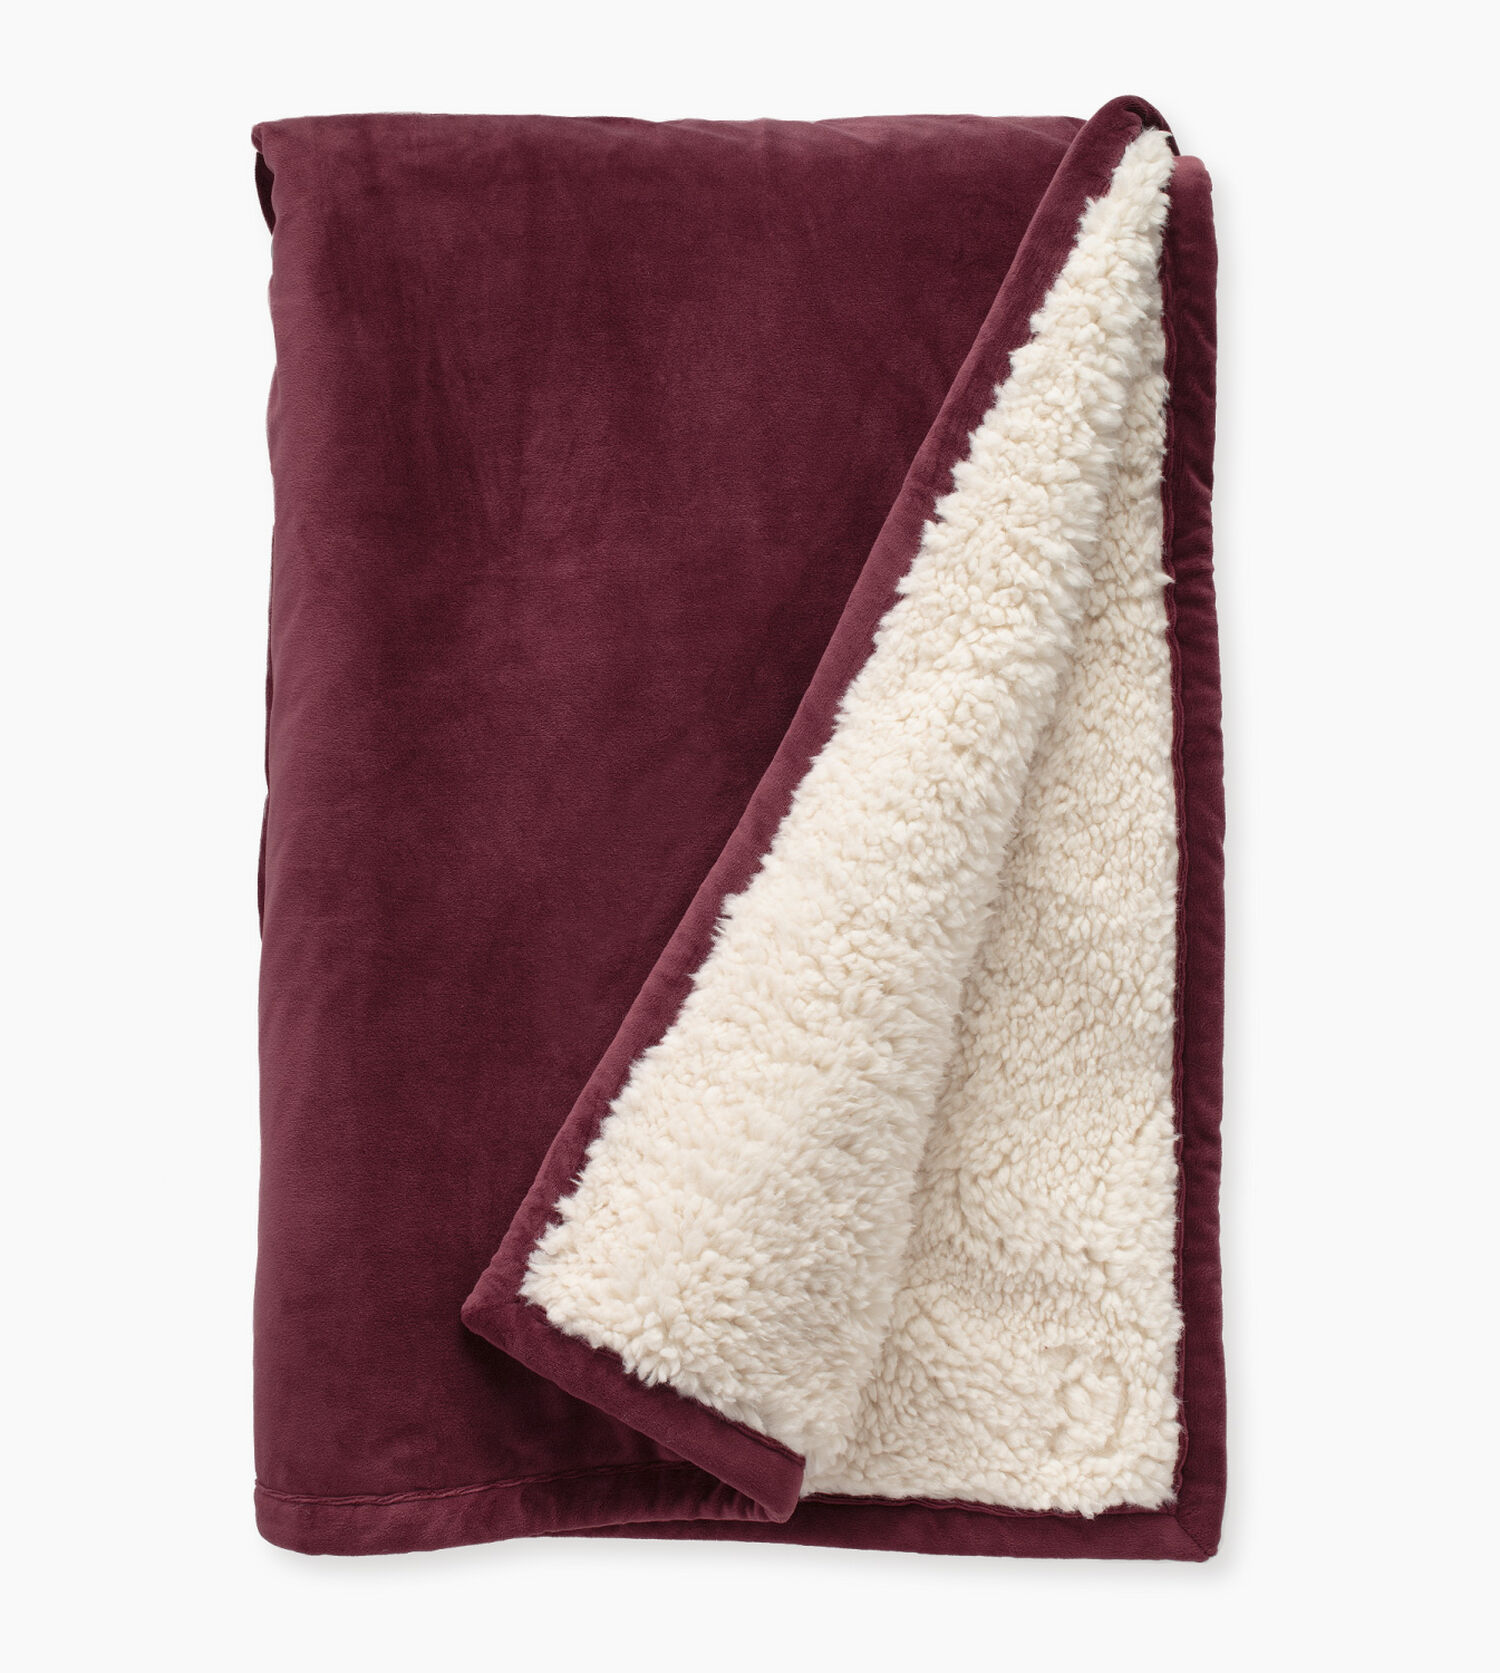 8c46b870326 Home Collection Share this product Bliss Sherpa Throw- 50